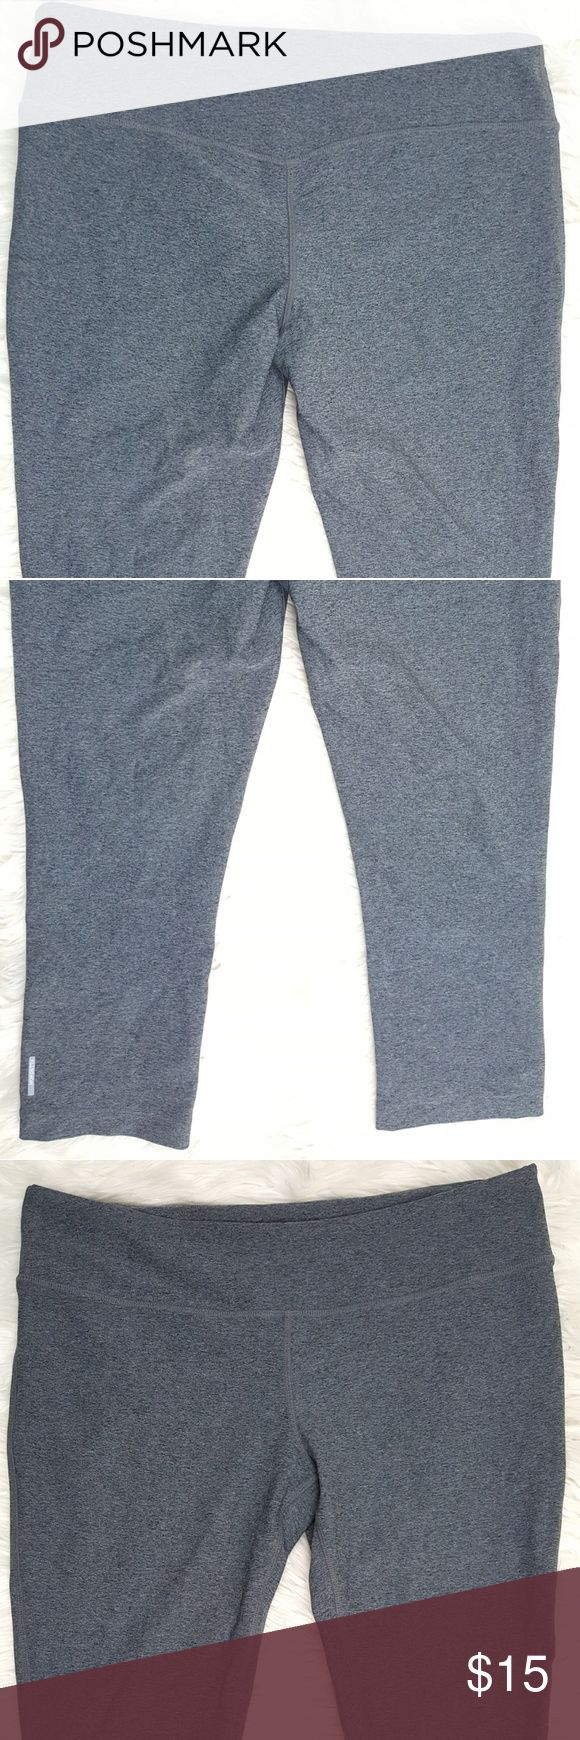 Mondetta Women's Solid Gray Athletic Capris XL Mondetta women's solid Gray athletic cropped capris.  Size XL.  Gently used, no flaws.  Inseam 22 1/2 inches  Rise 10 inches  Waist laying flat 18 inches Mondetta Pants Ankle & Cropped